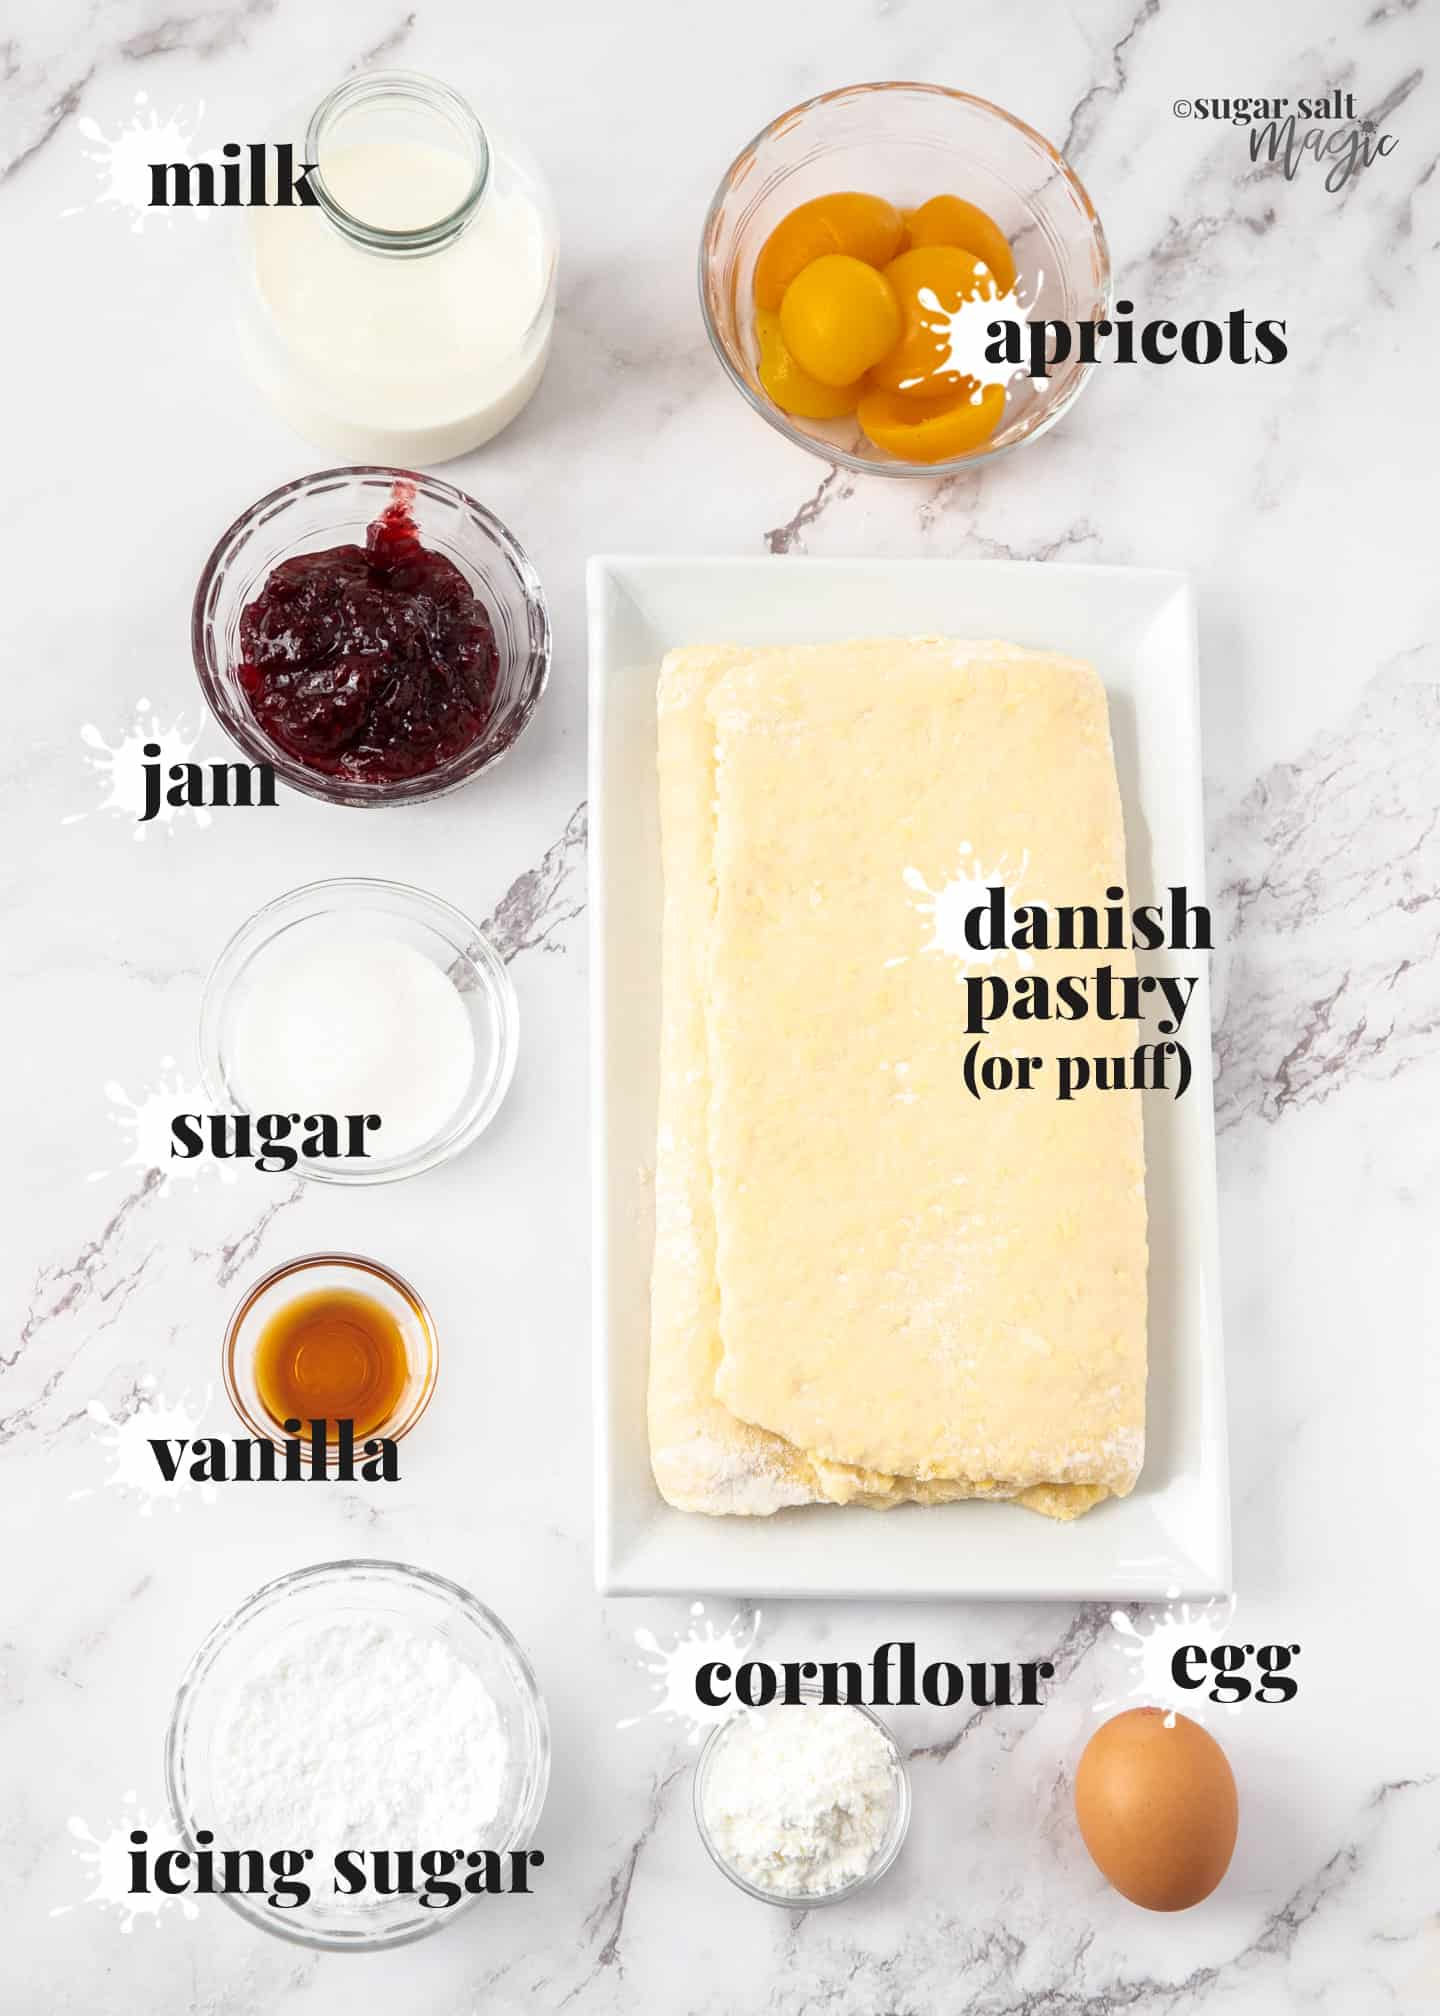 Ingredients for custard danish pastry on a marble surface.